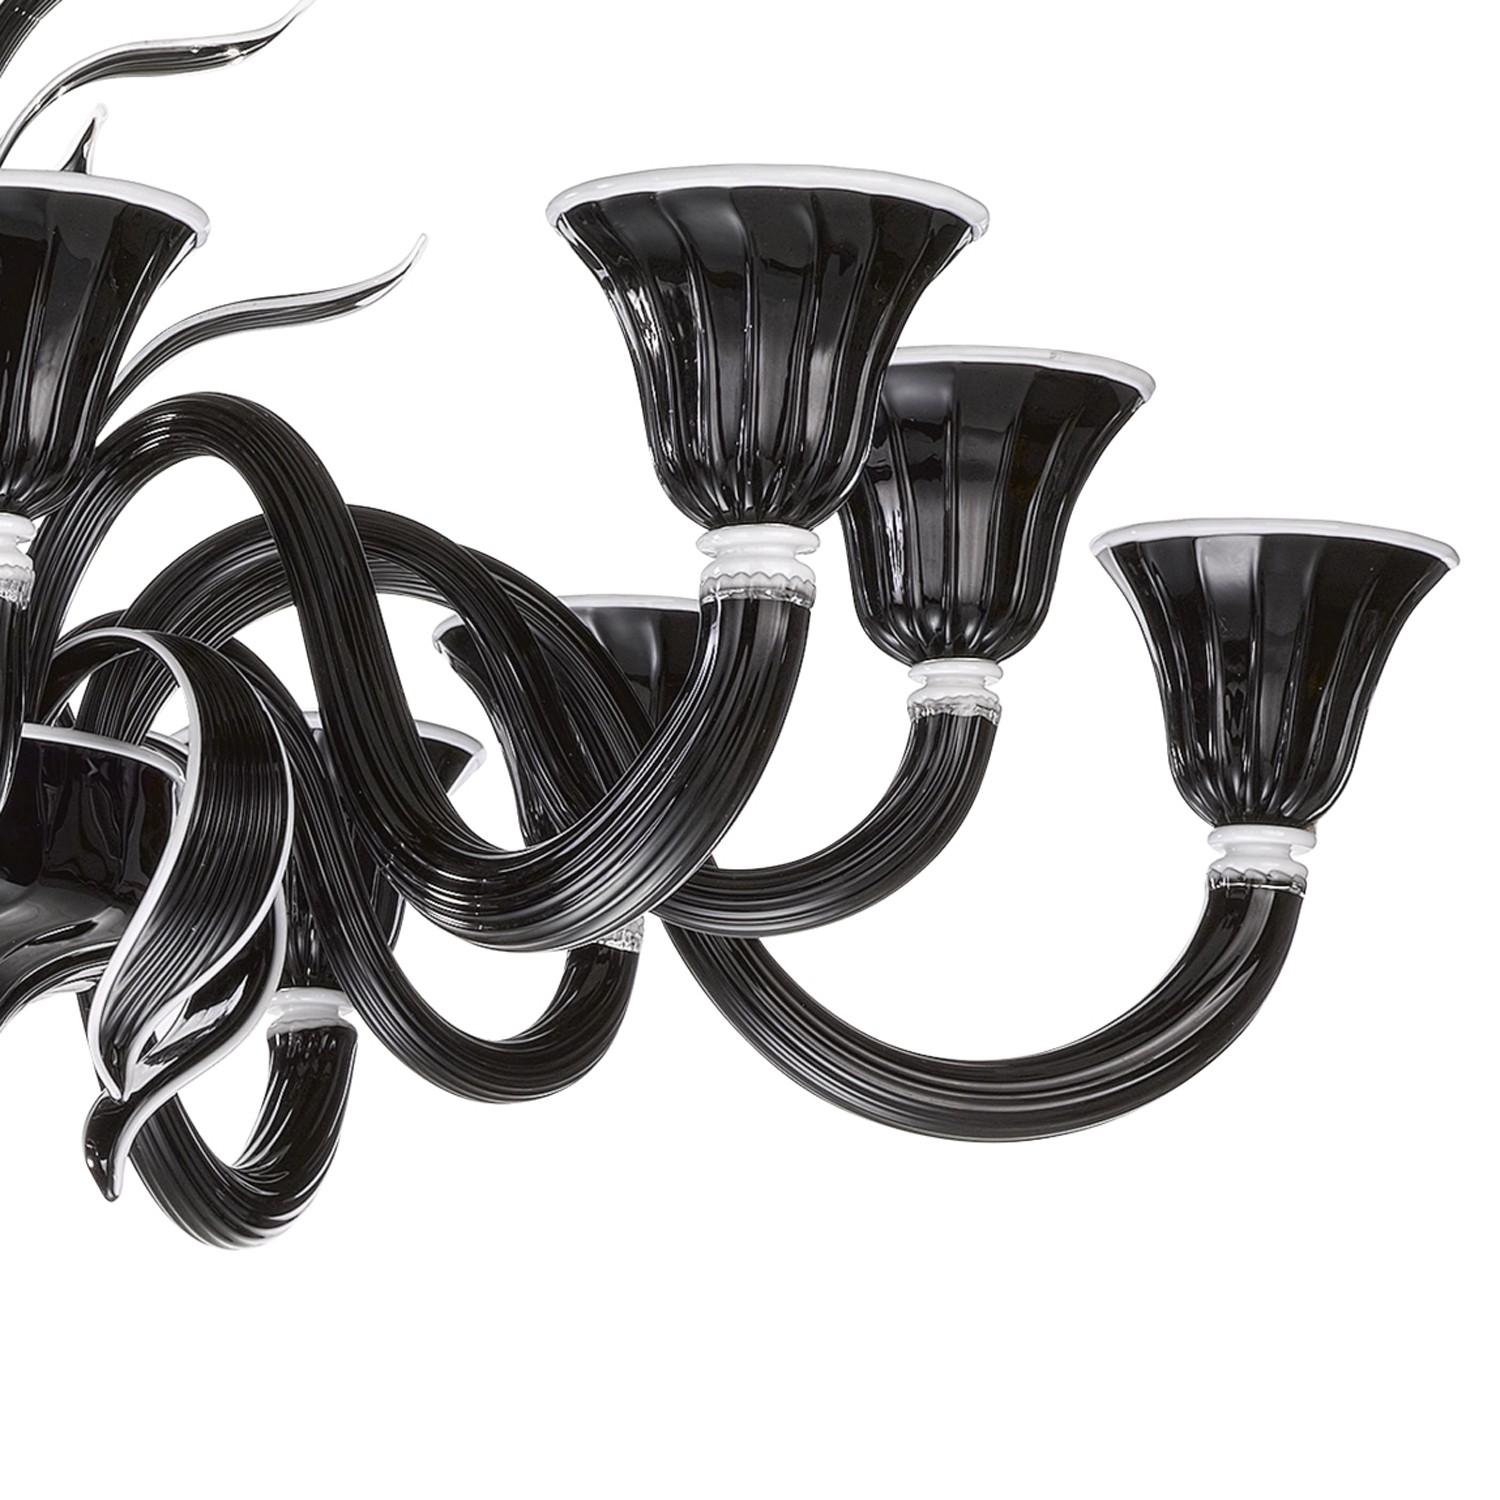 Murano Glass Chandelier In Black And White Glass 6 6